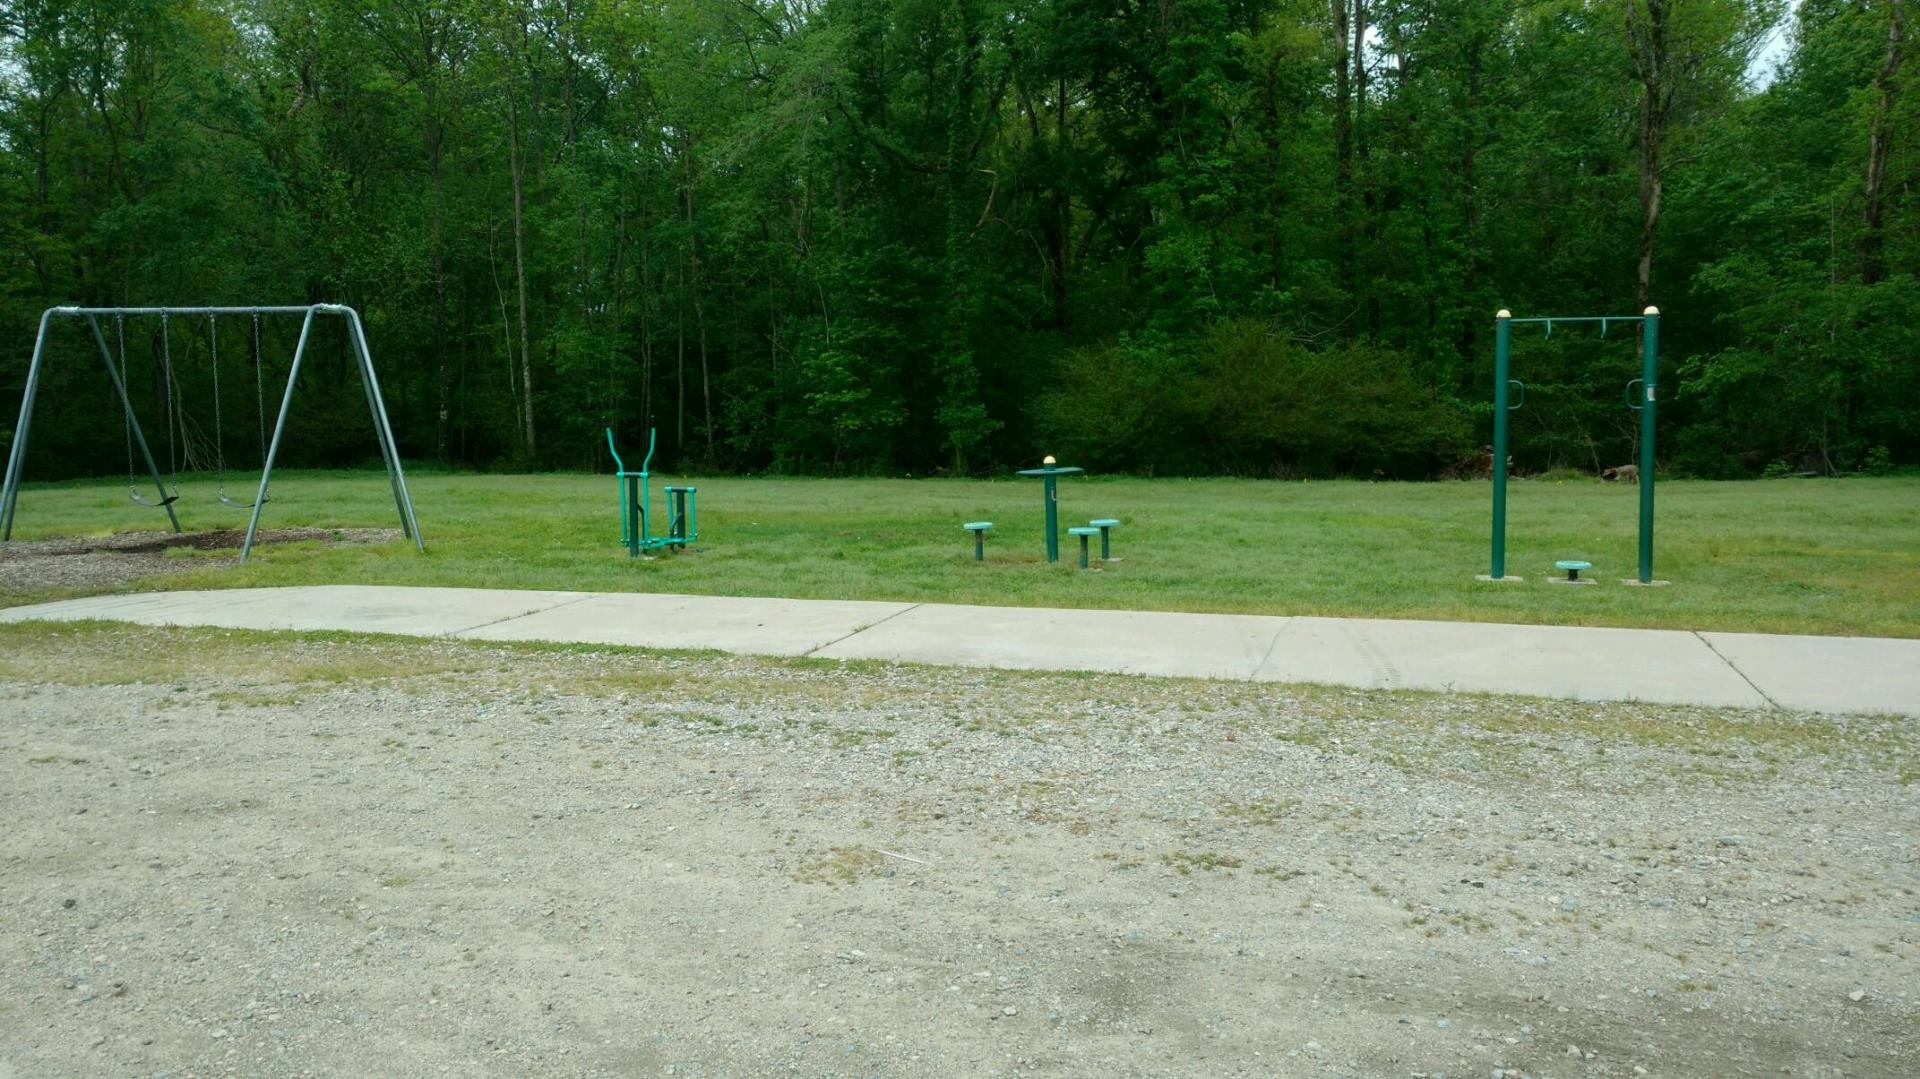 Exercise Equipment at Stoney Creek Environmental Park